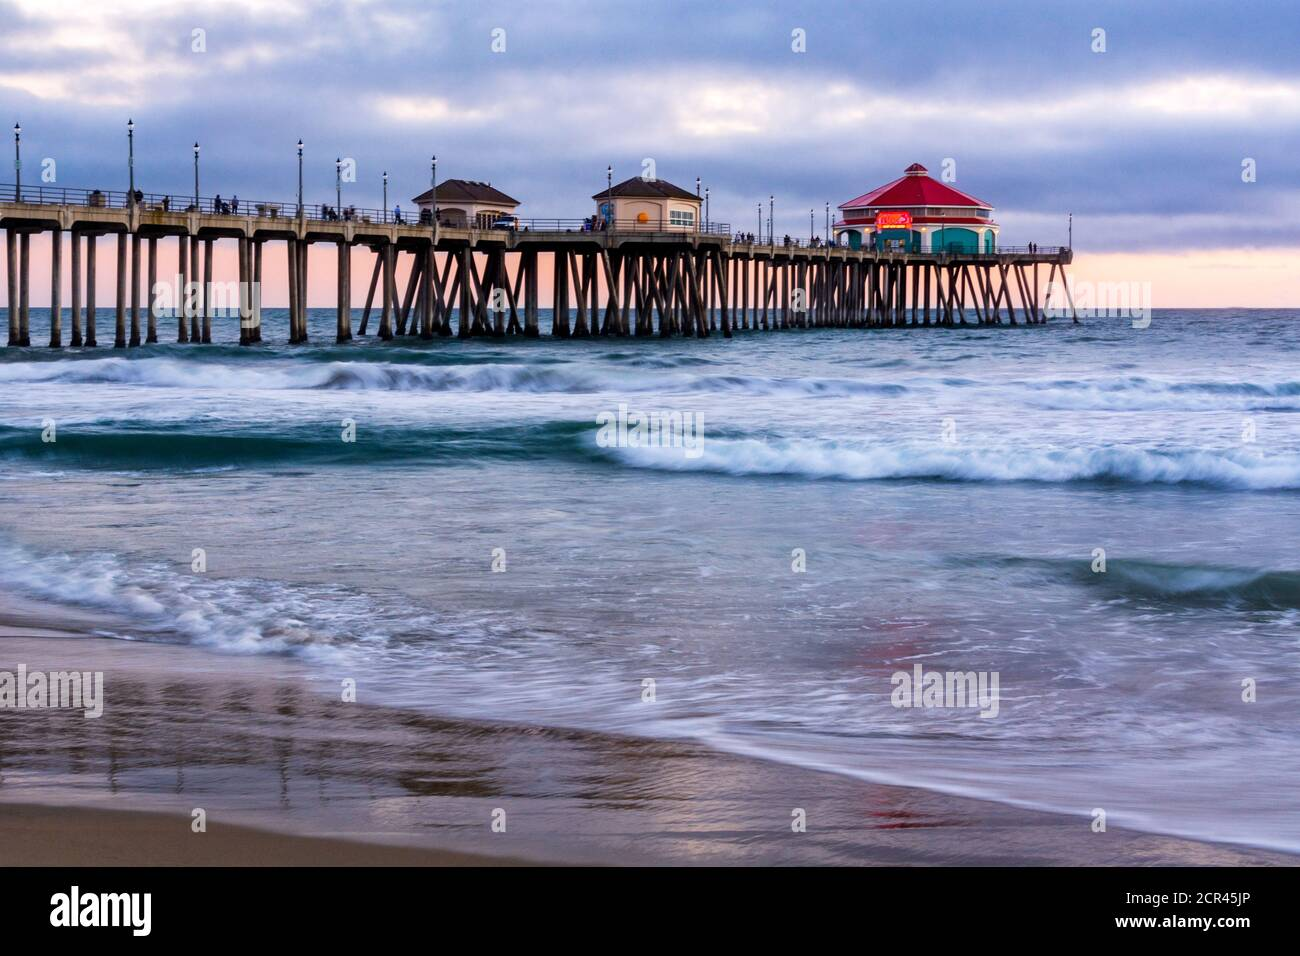 Seascape of the Huntington Beach pier at sunset, with slow shutter speed. Ruby's Diner is located at the end of the pier and is popular with tourists. Stock Photo